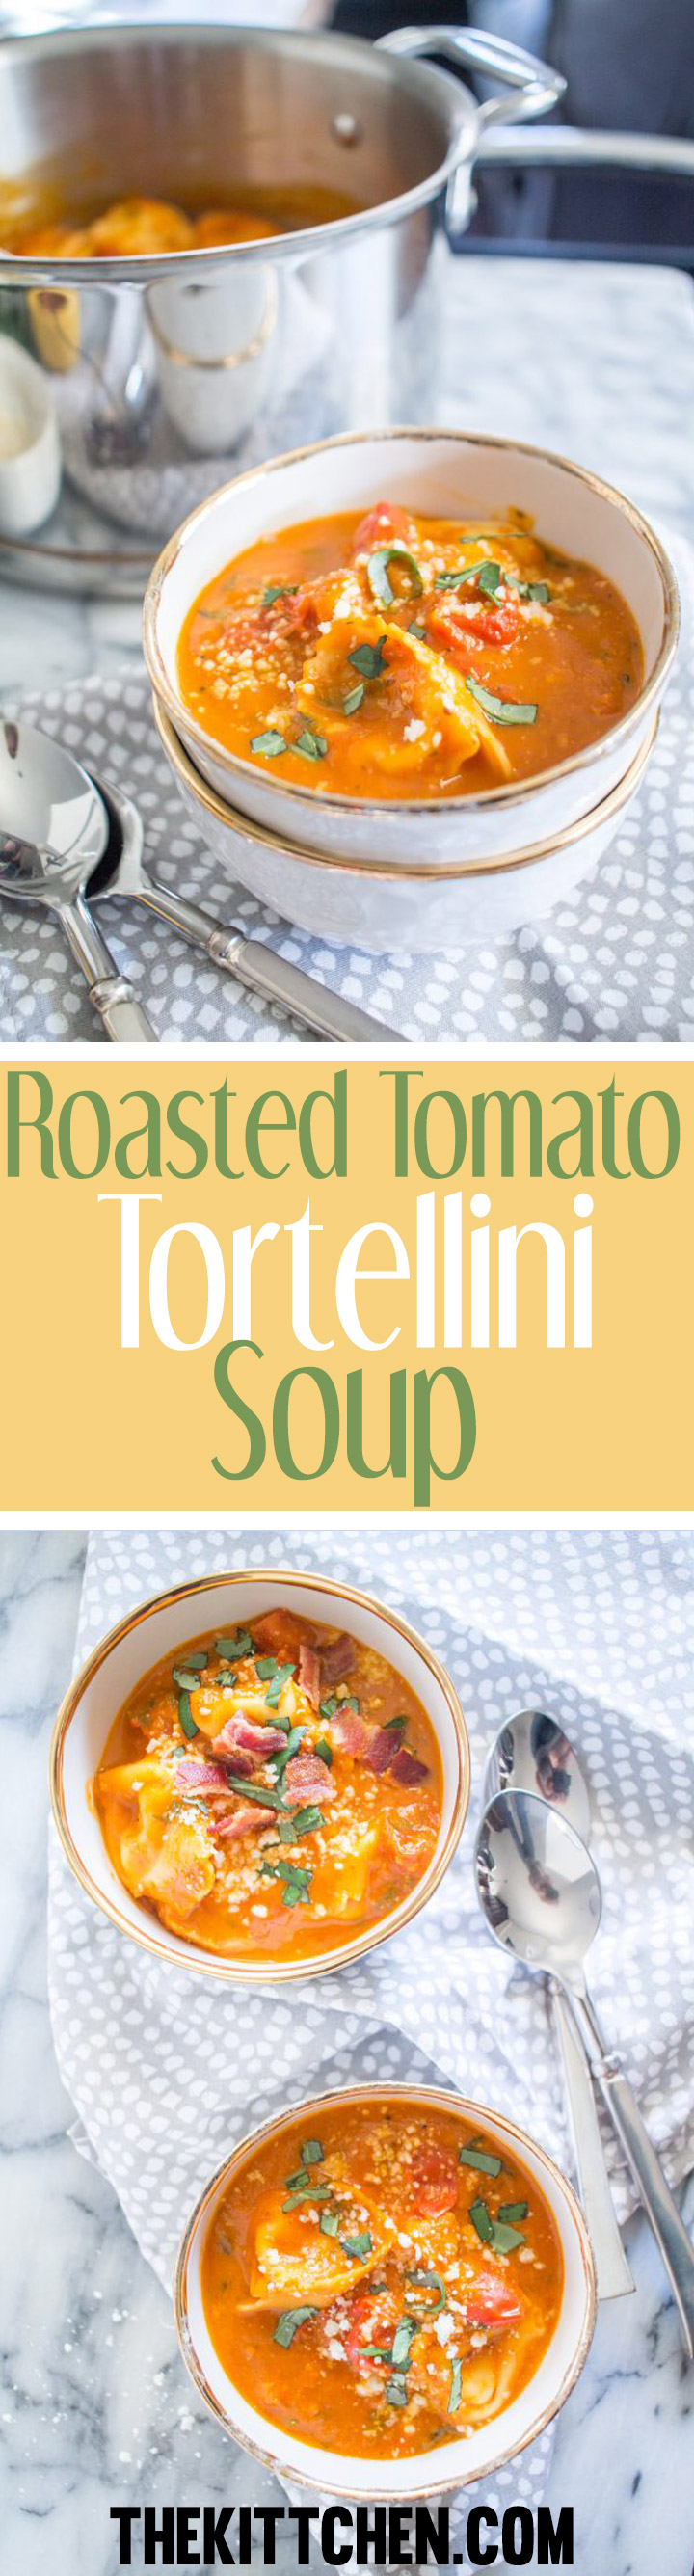 This Roasted Tomato Tortellini Soup is an easy to prepare meal that is made with simple wholesome ingredients. It's just thing to serve in winter.